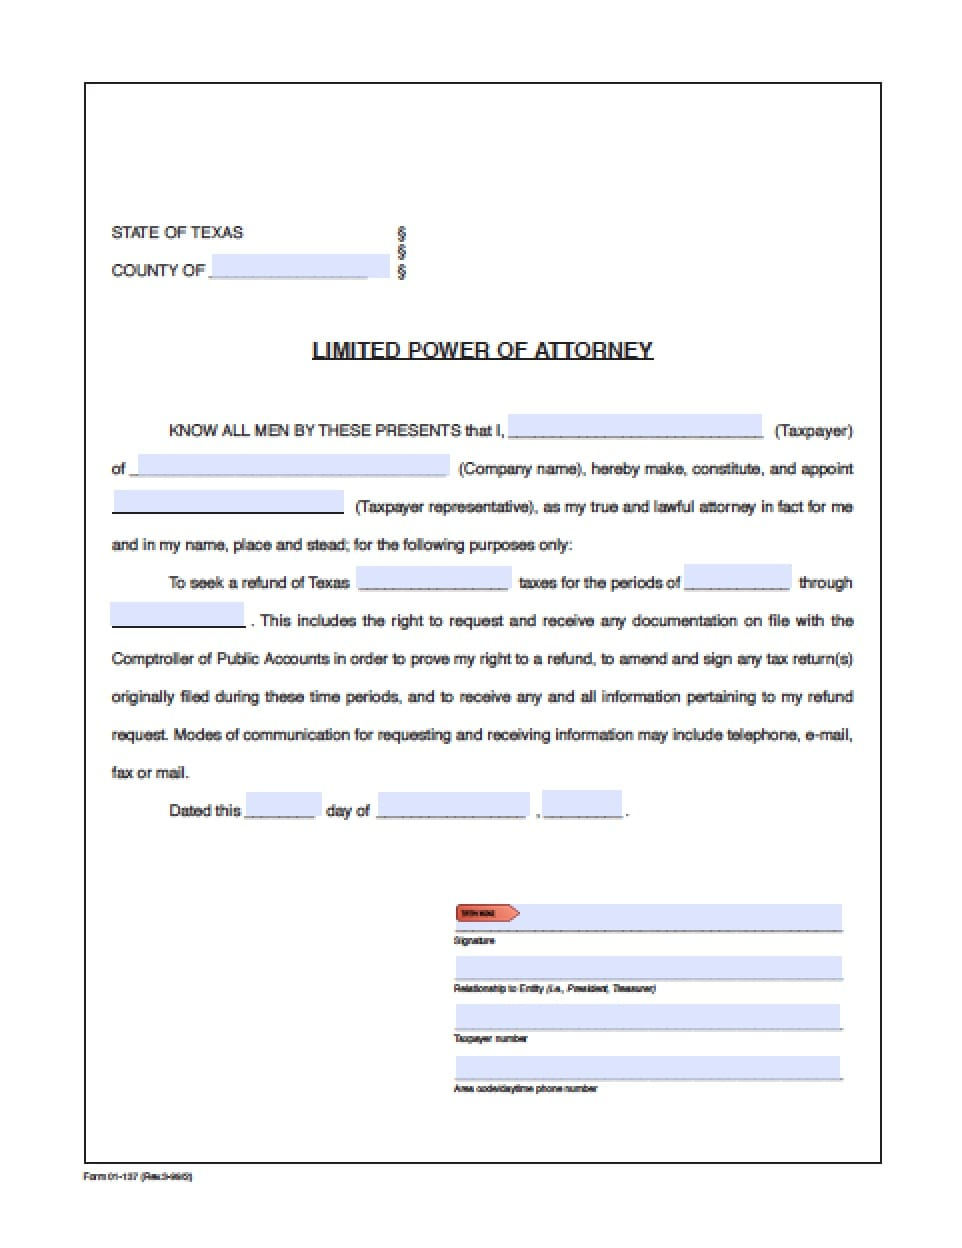 Texas Real Estate Only Power Of Attorney Form Power Of Attorney